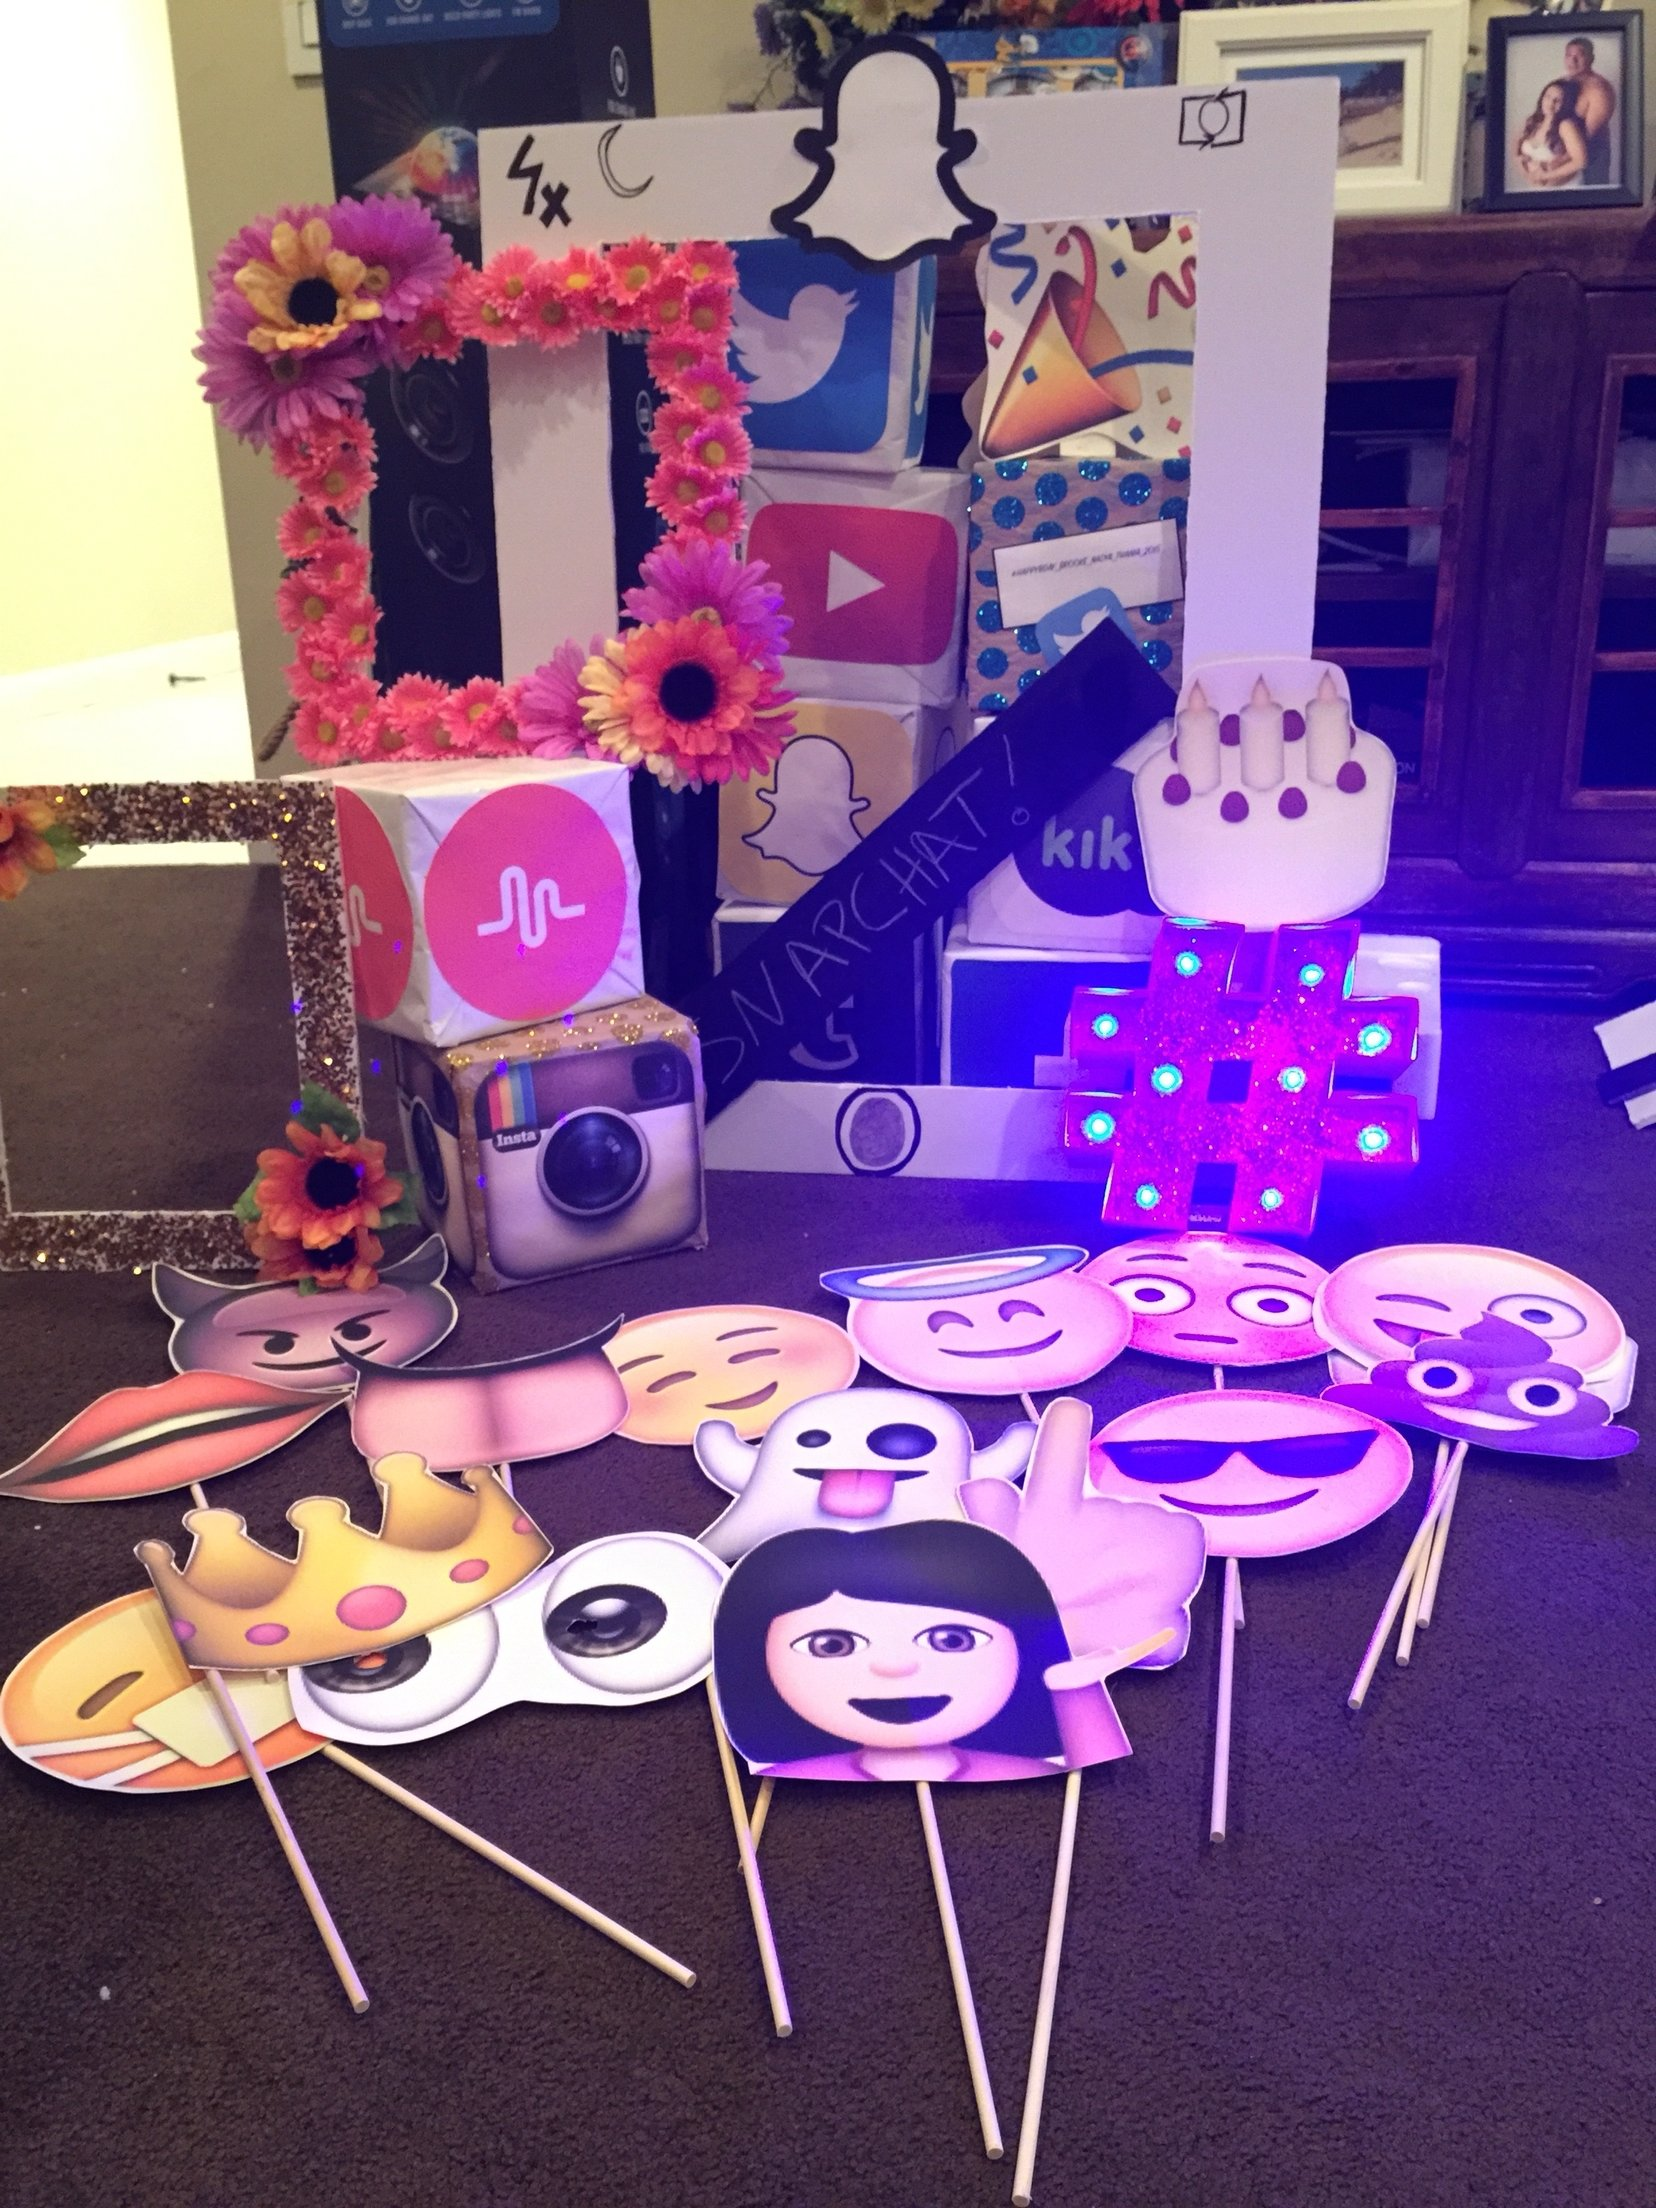 10 Best Ideas For 13Th Birthday Party social media party props i made social media party pinterest 6 2021